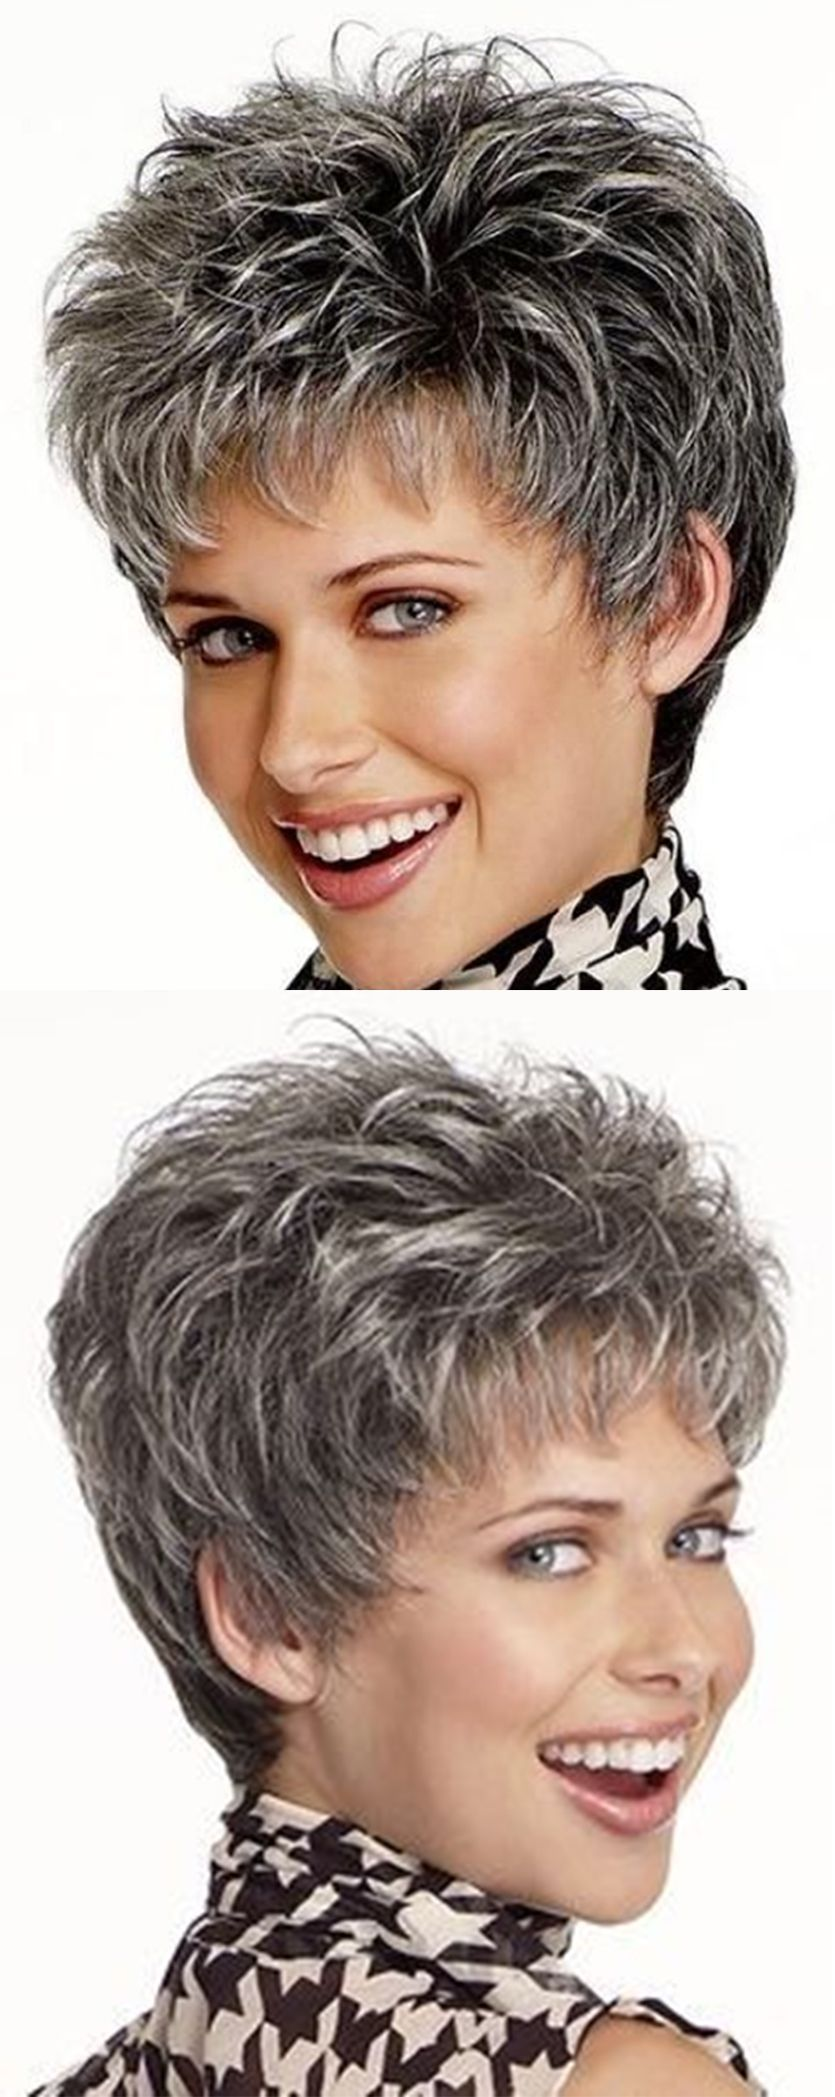 Short Cropped Hairstyles 2016 | Latest Hair Trends For ...